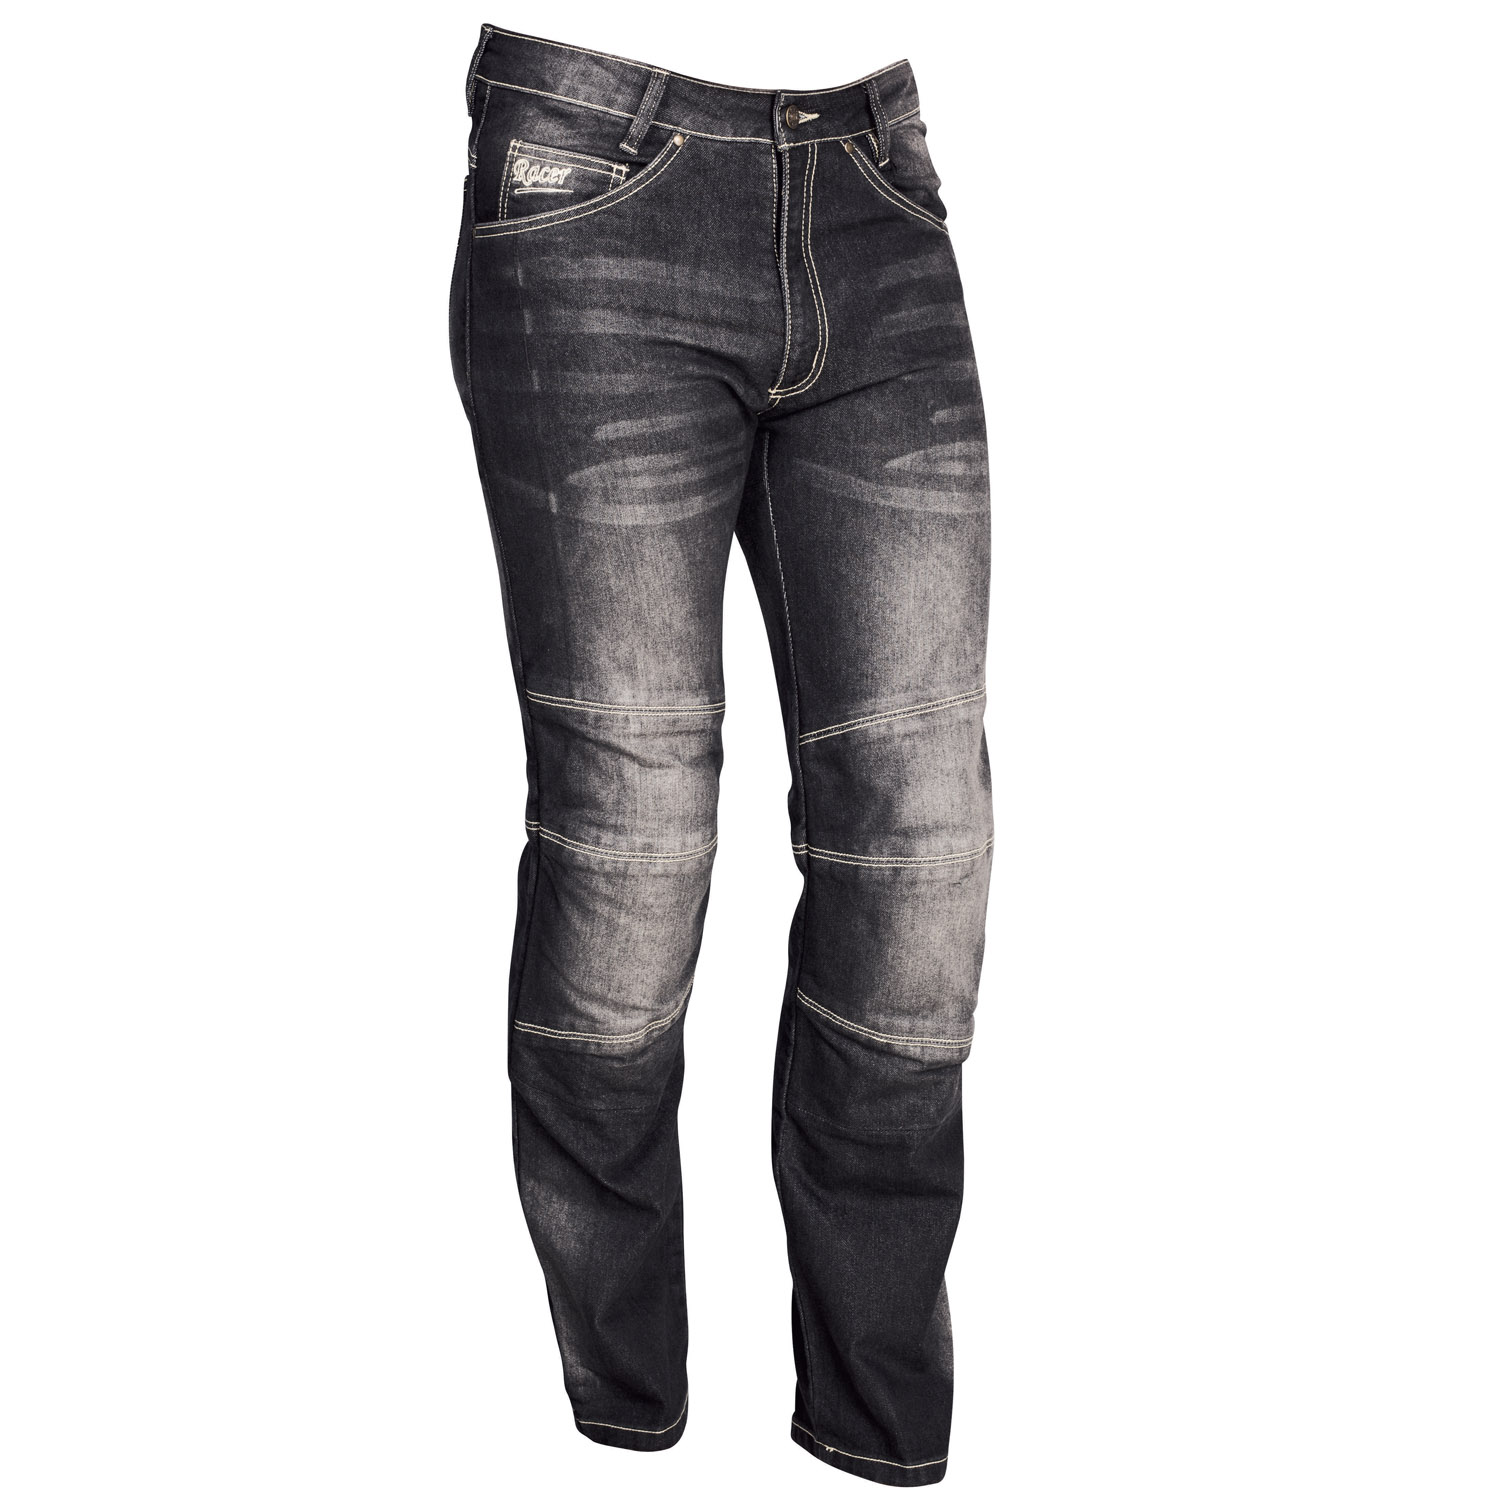 racer jeans herren motorradhose touring cordura denim. Black Bedroom Furniture Sets. Home Design Ideas